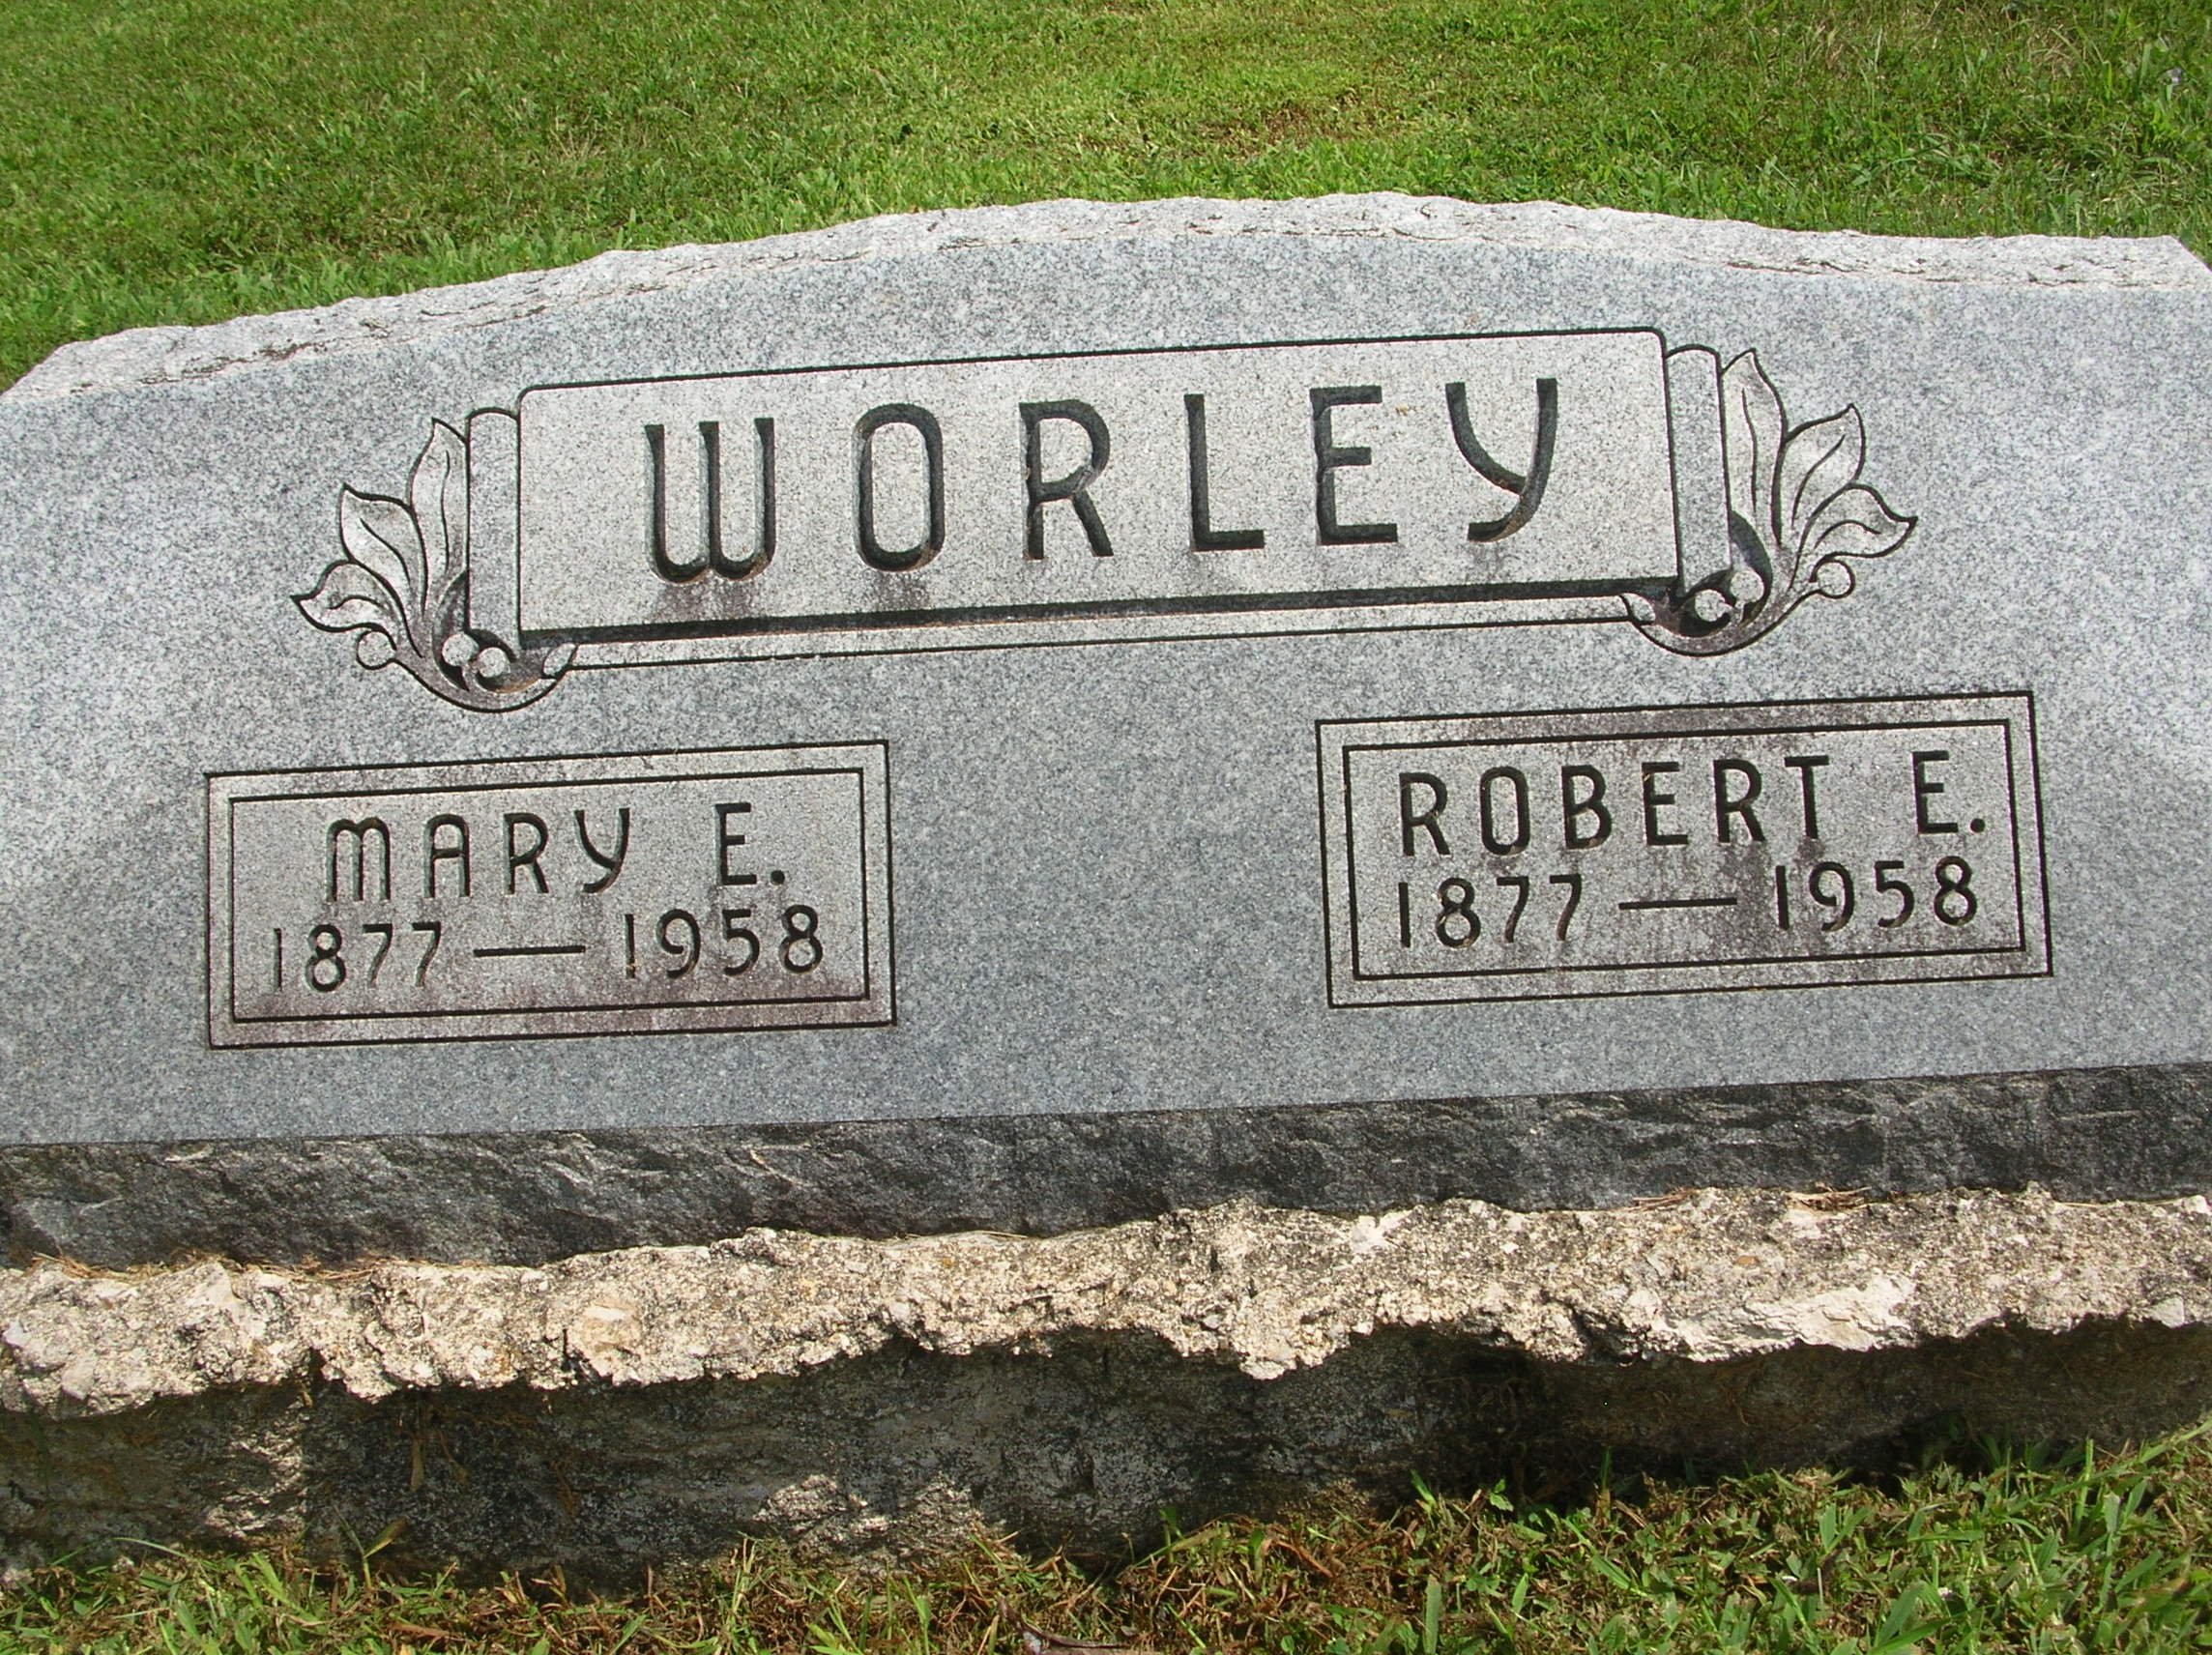 Robert Worley